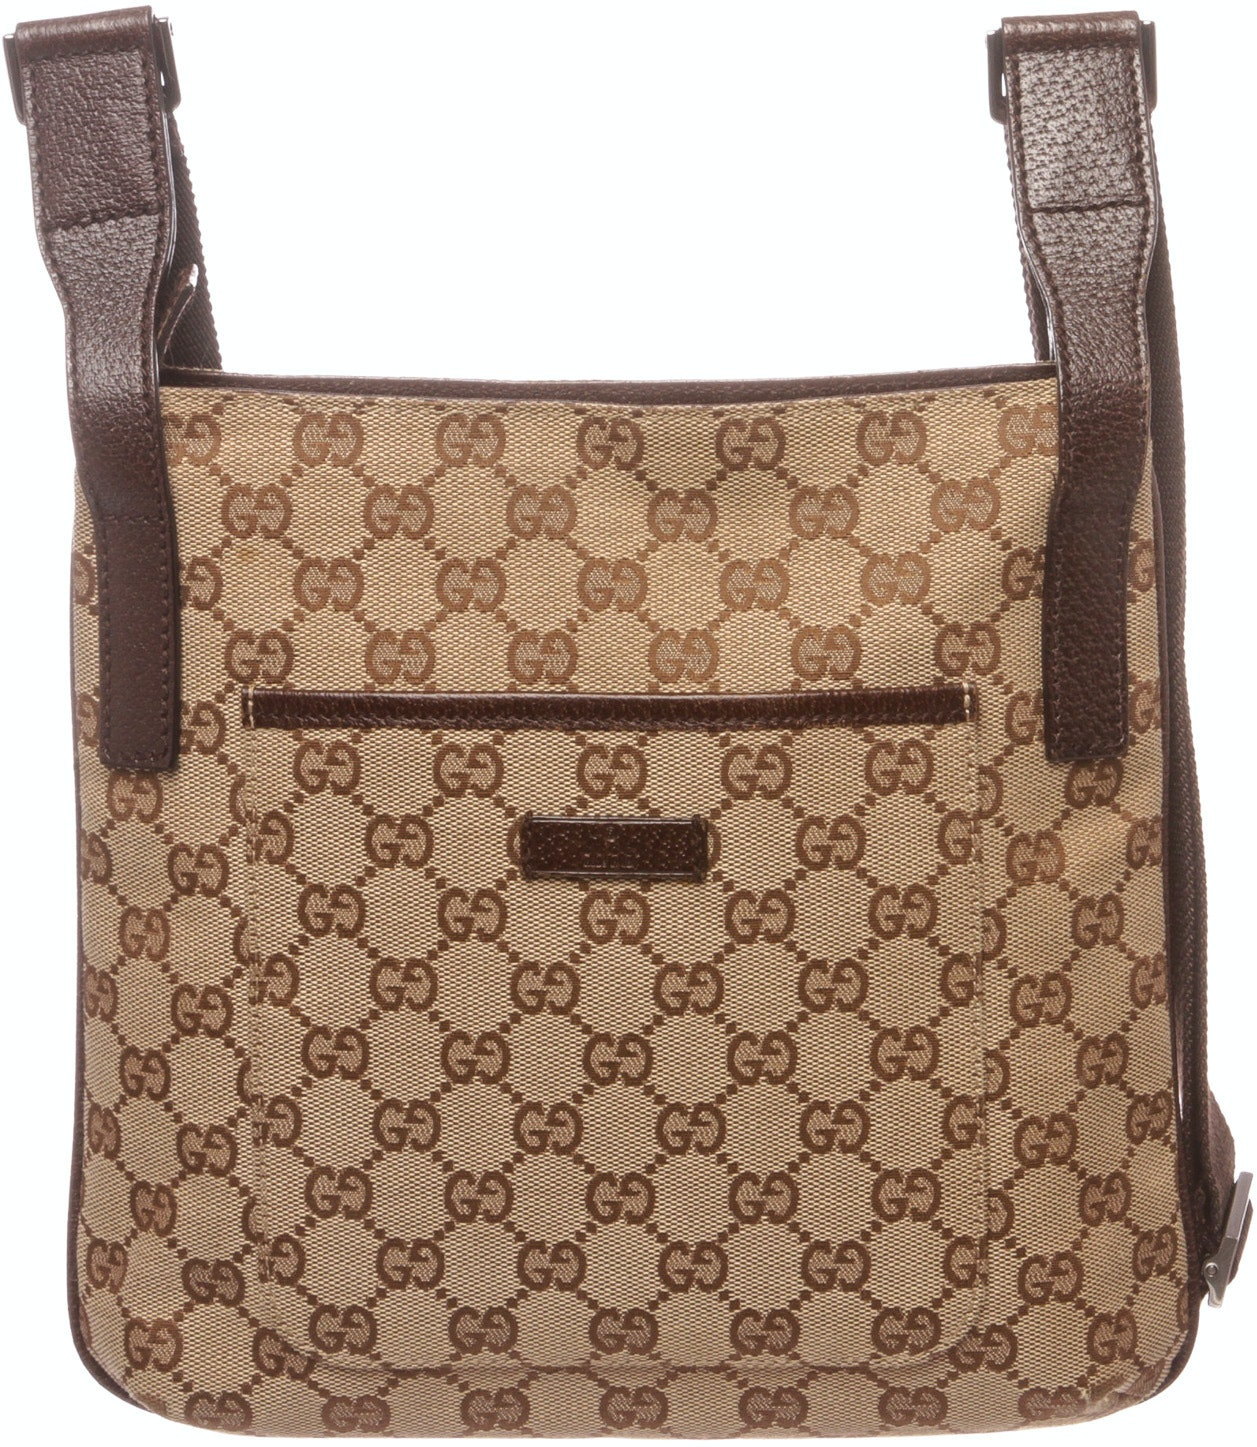 Gucci Crossbody Monogram GG Beige/Brown